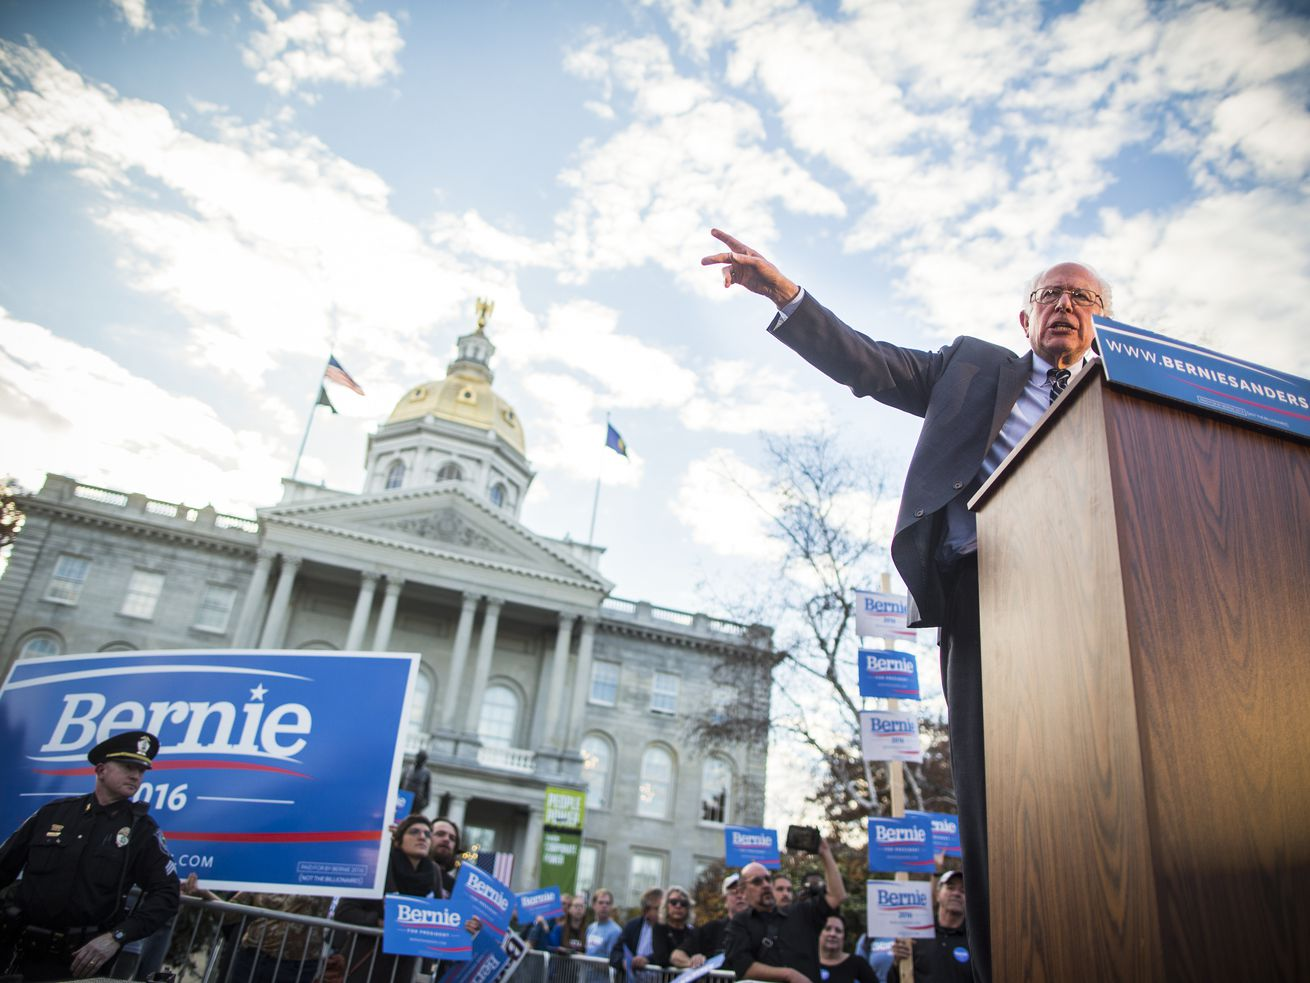 Sen. Bernie Sanders (D-VT) speaks at a 2016 campaign rally outside the New Hampshire State House, after filing the paperwork his candidacy on November 5, 2015.